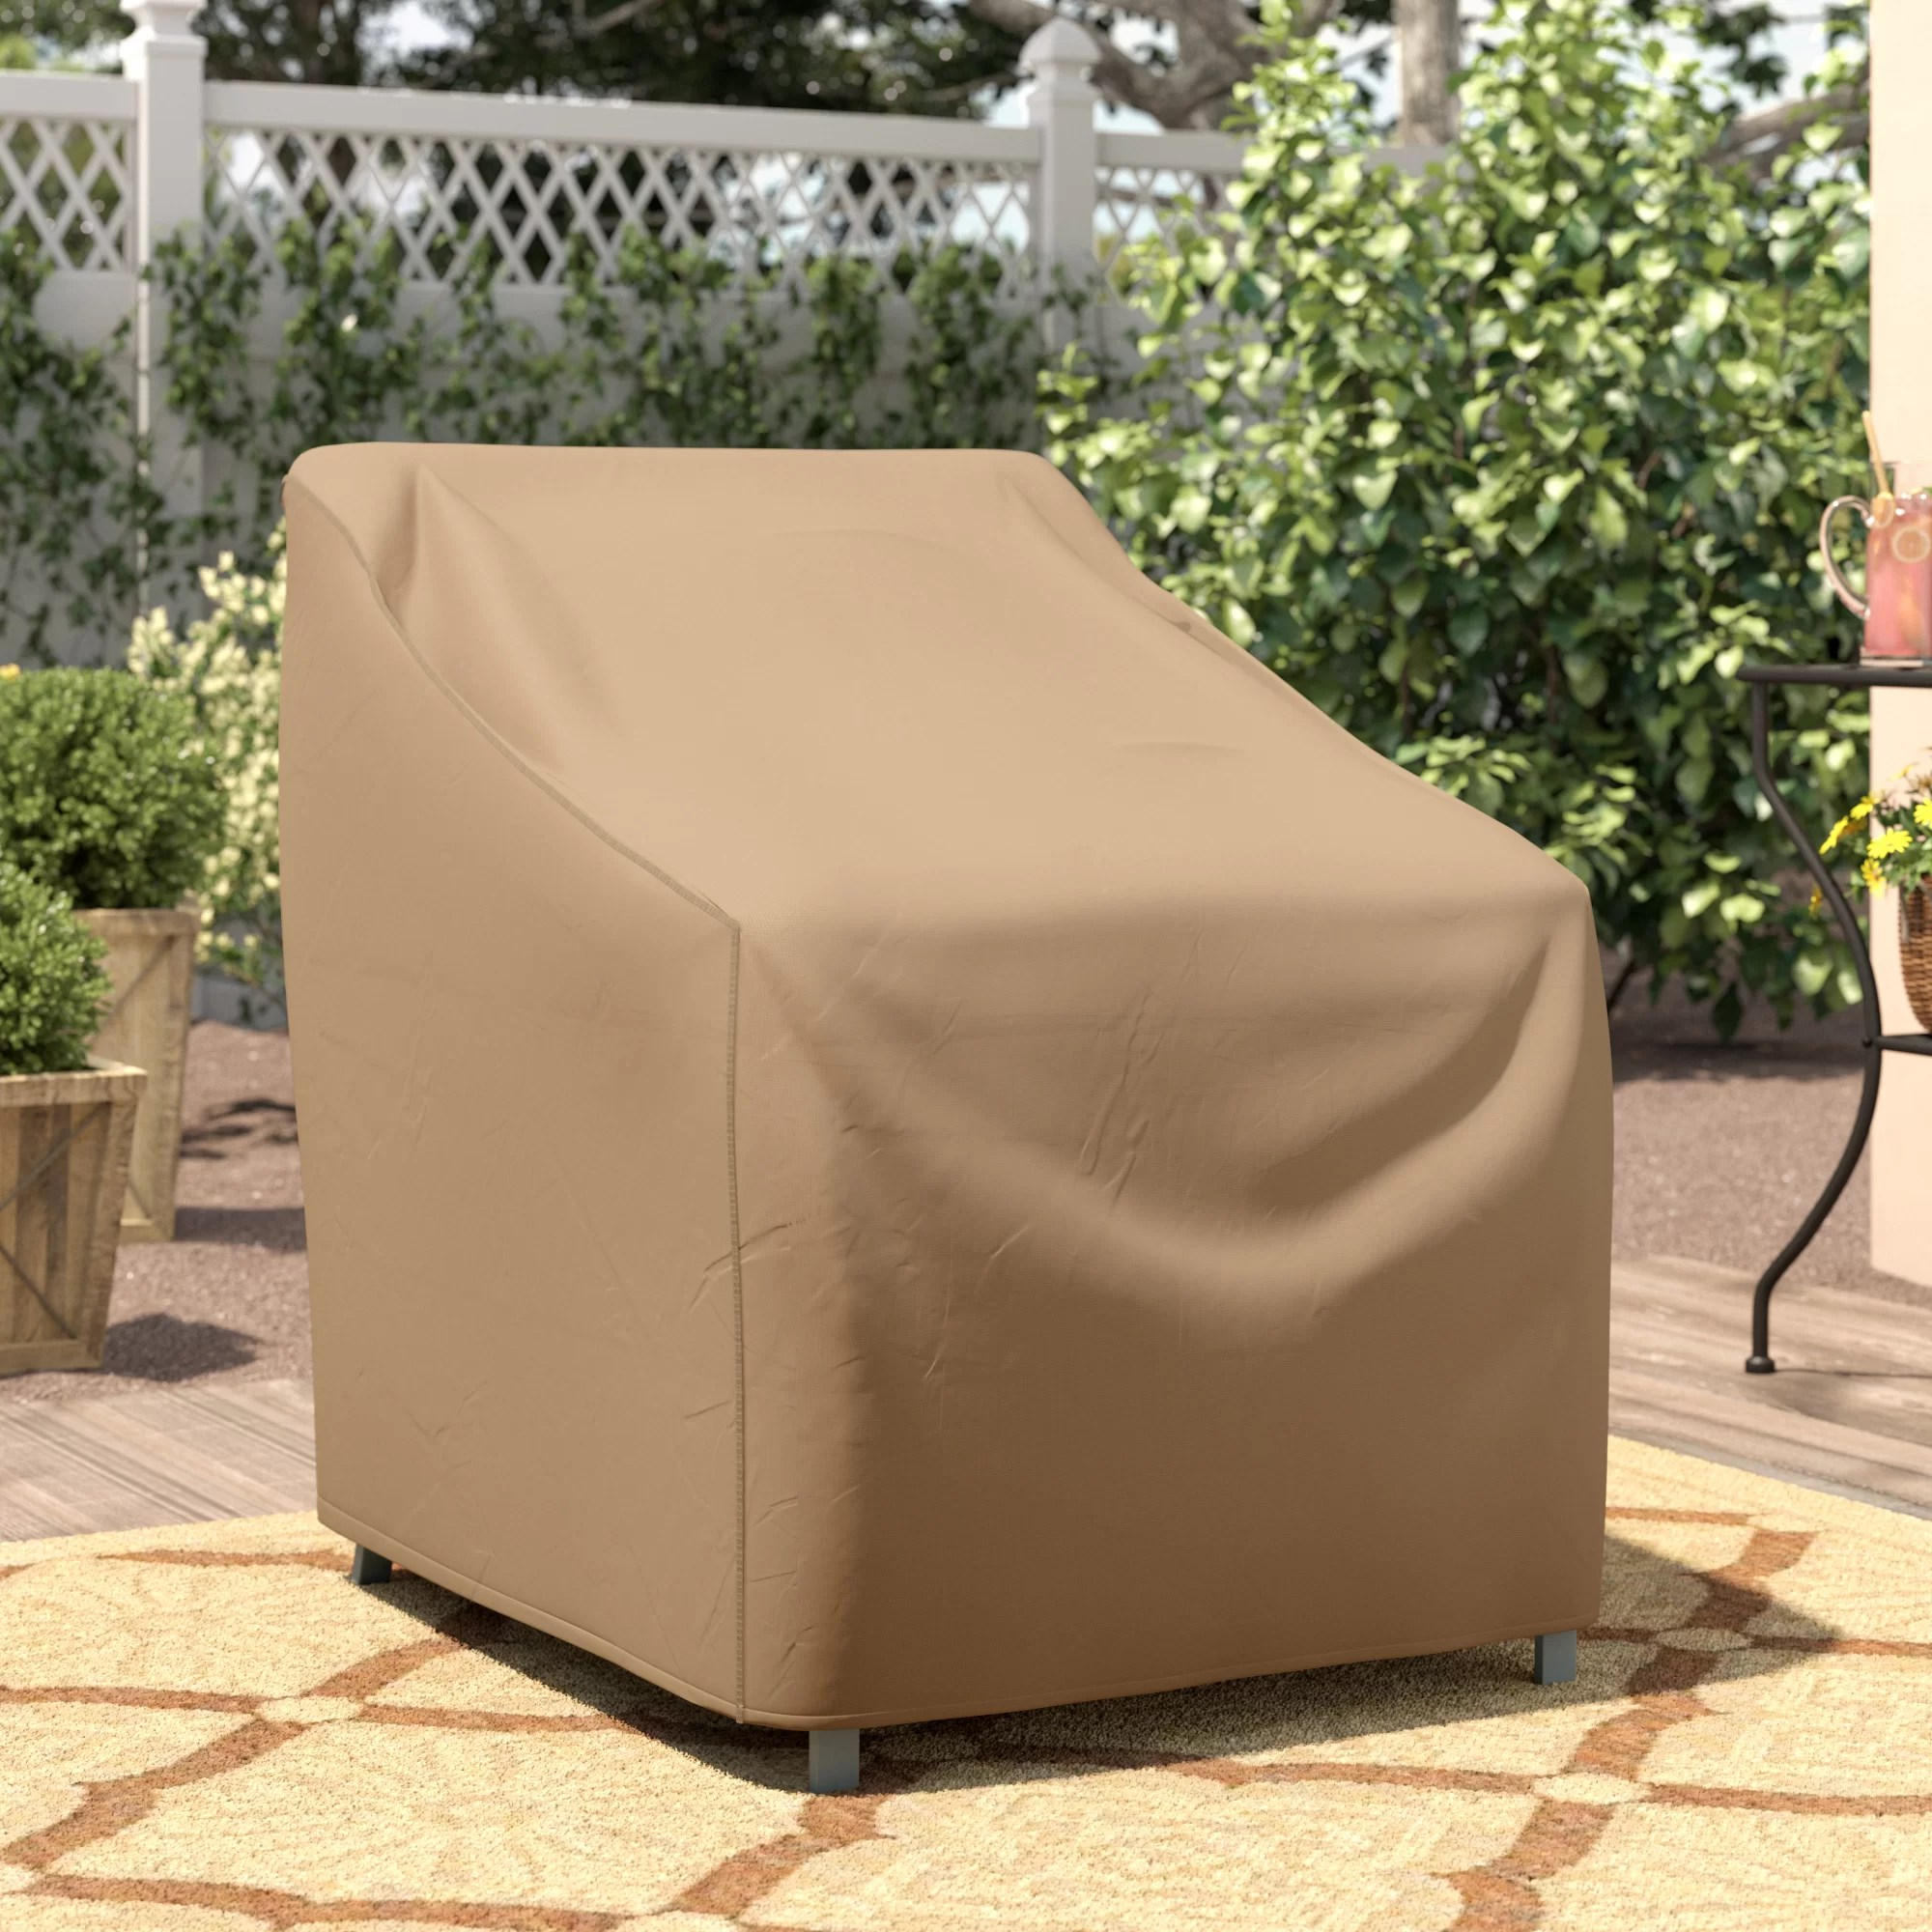 Your Chair Covers Wayfair Basics Patio Chair Cover